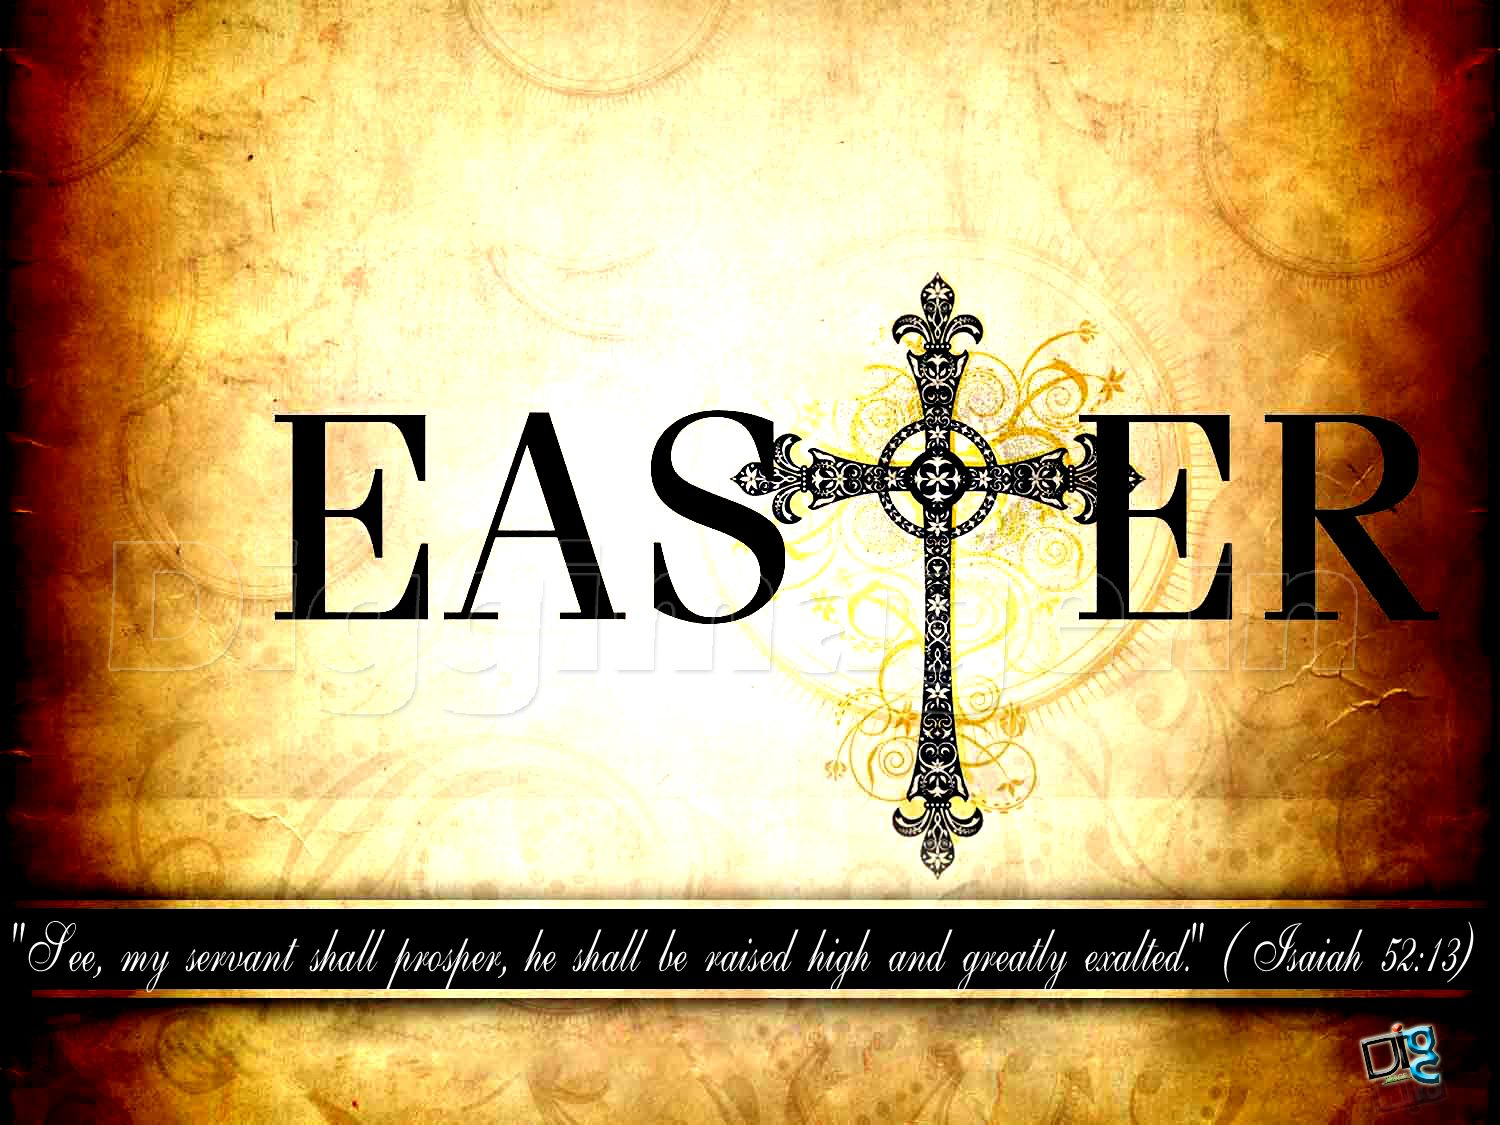 Happy easter religious free large images easerime happy easter religious free large images kristyandbryce Choice Image